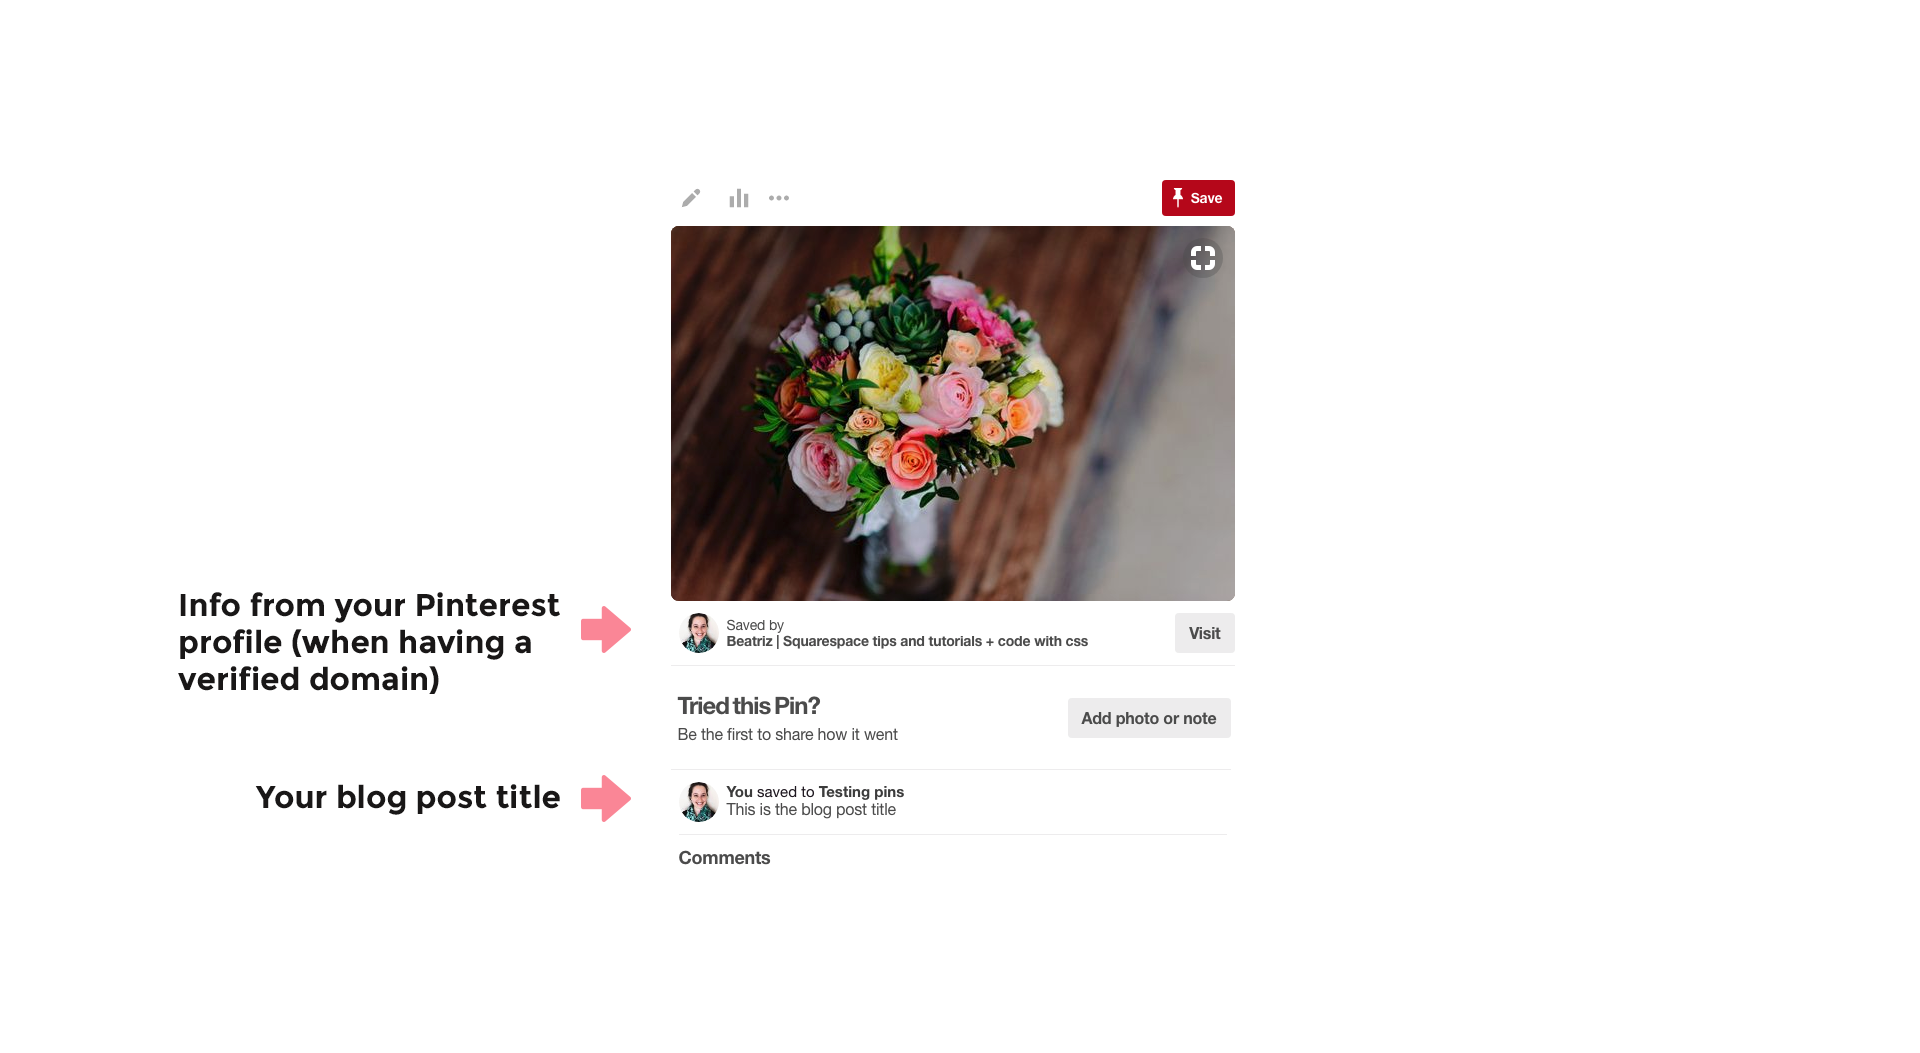 What a Pinterest pin without rich pins looks like when pinned from the main page